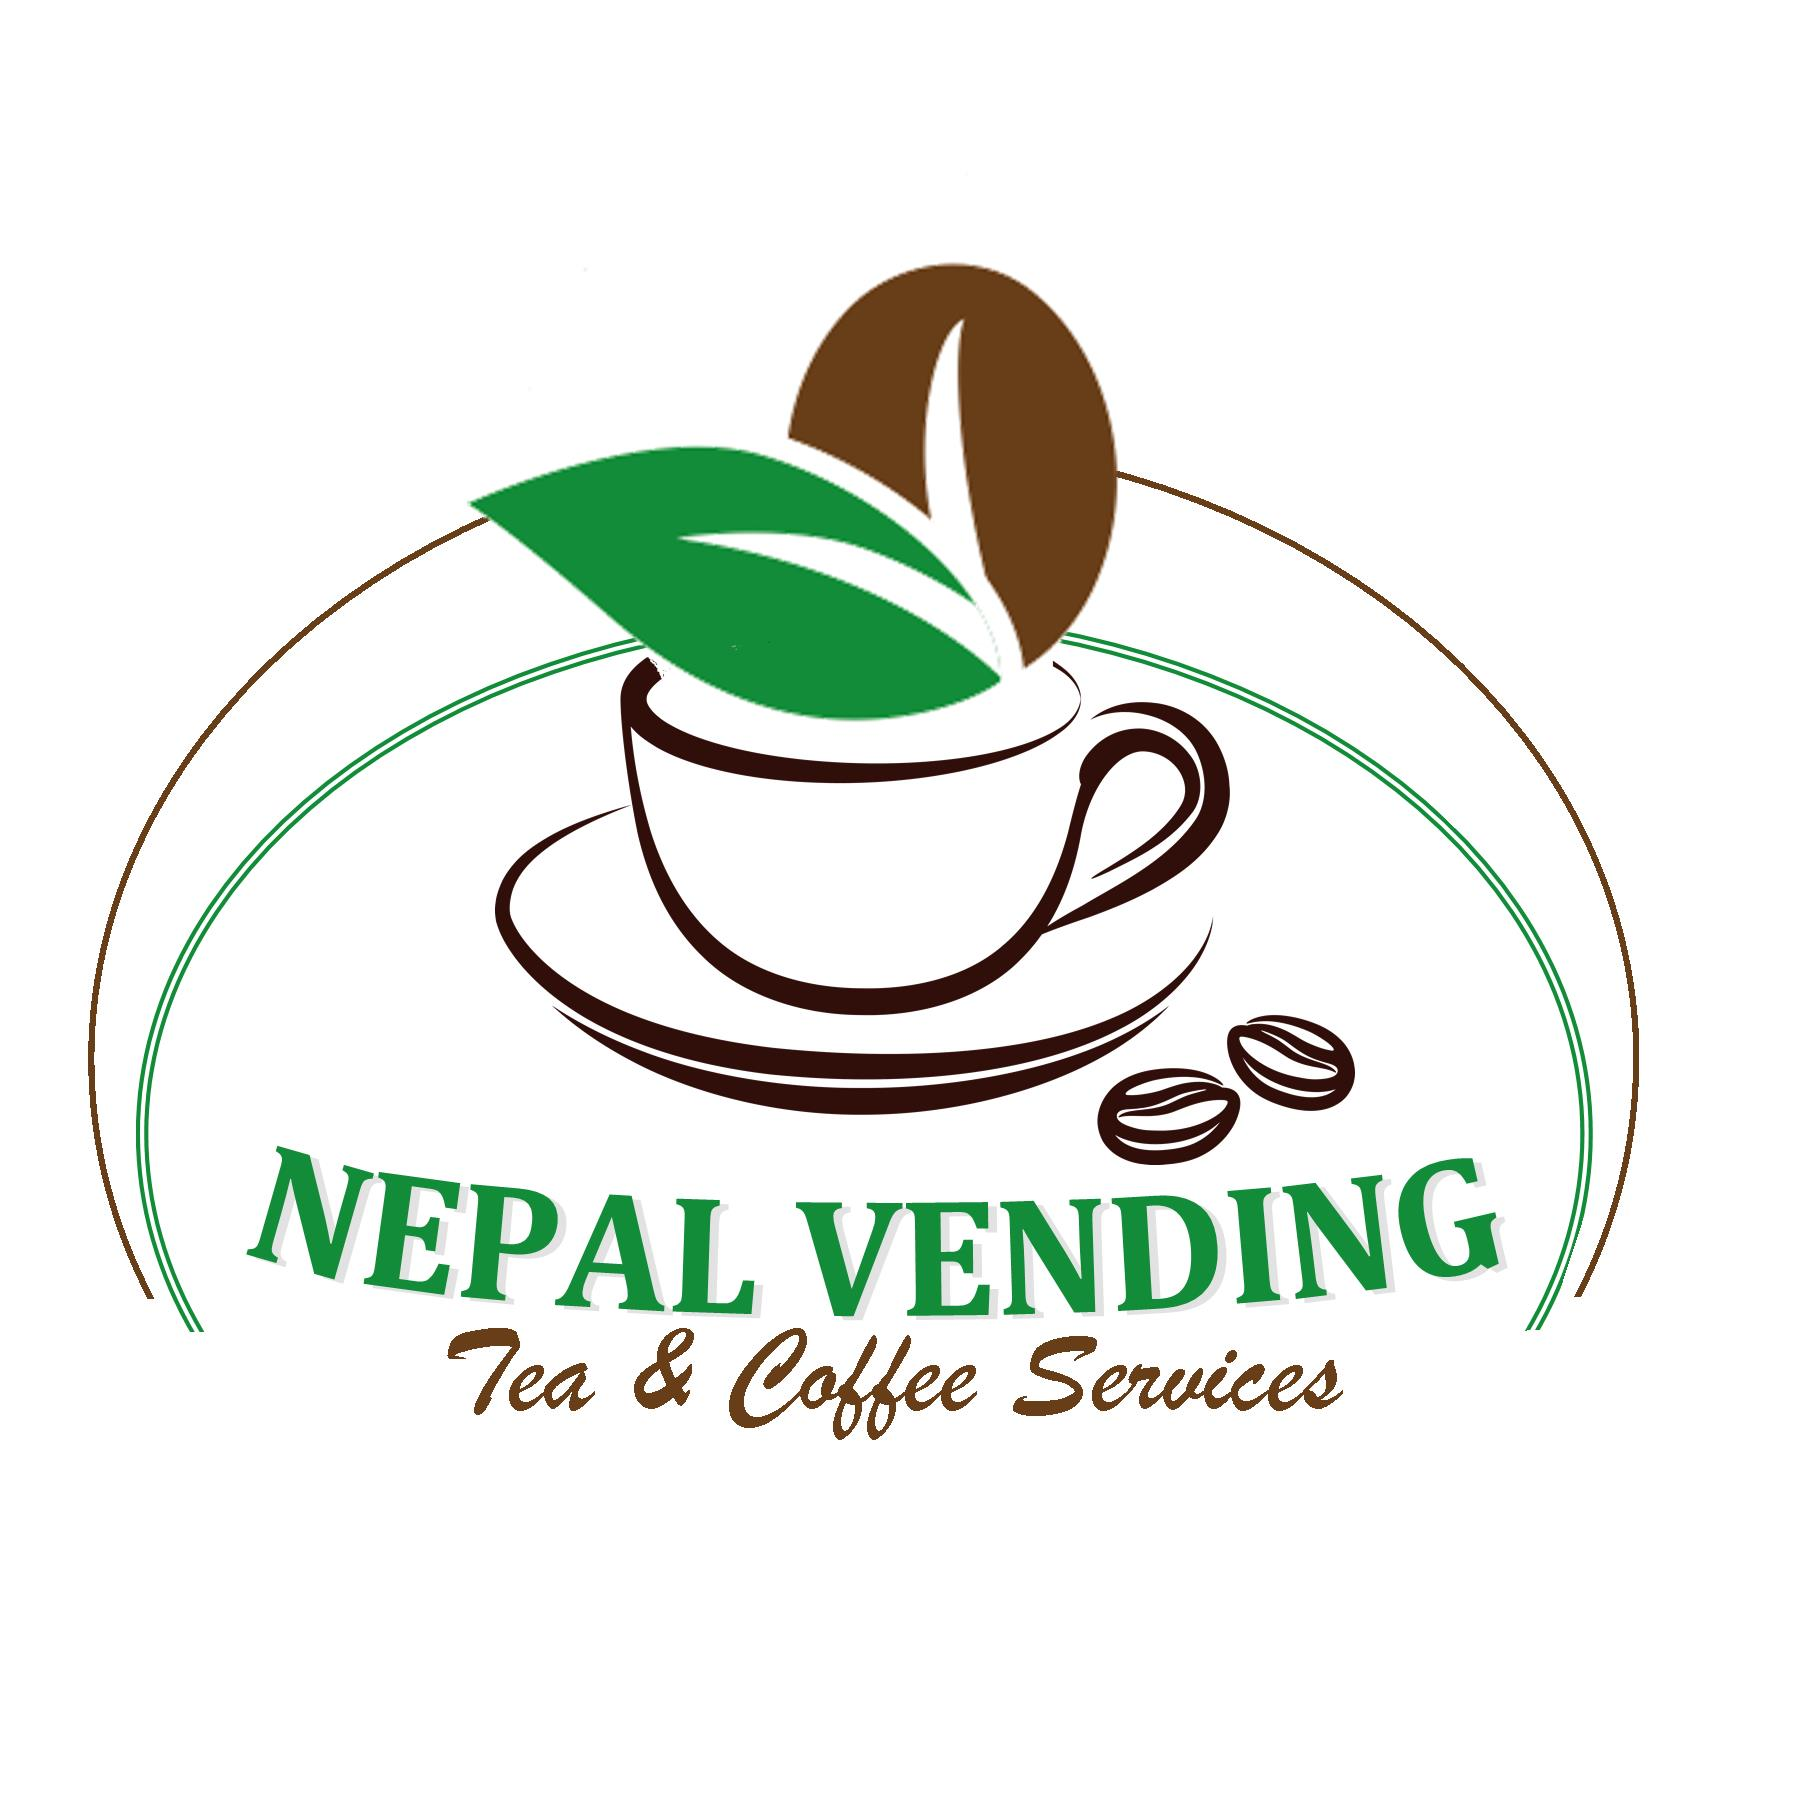 Nepal Vending Pvt  Ltd  - Recent Job Vacancy Nepal - Delivery Person